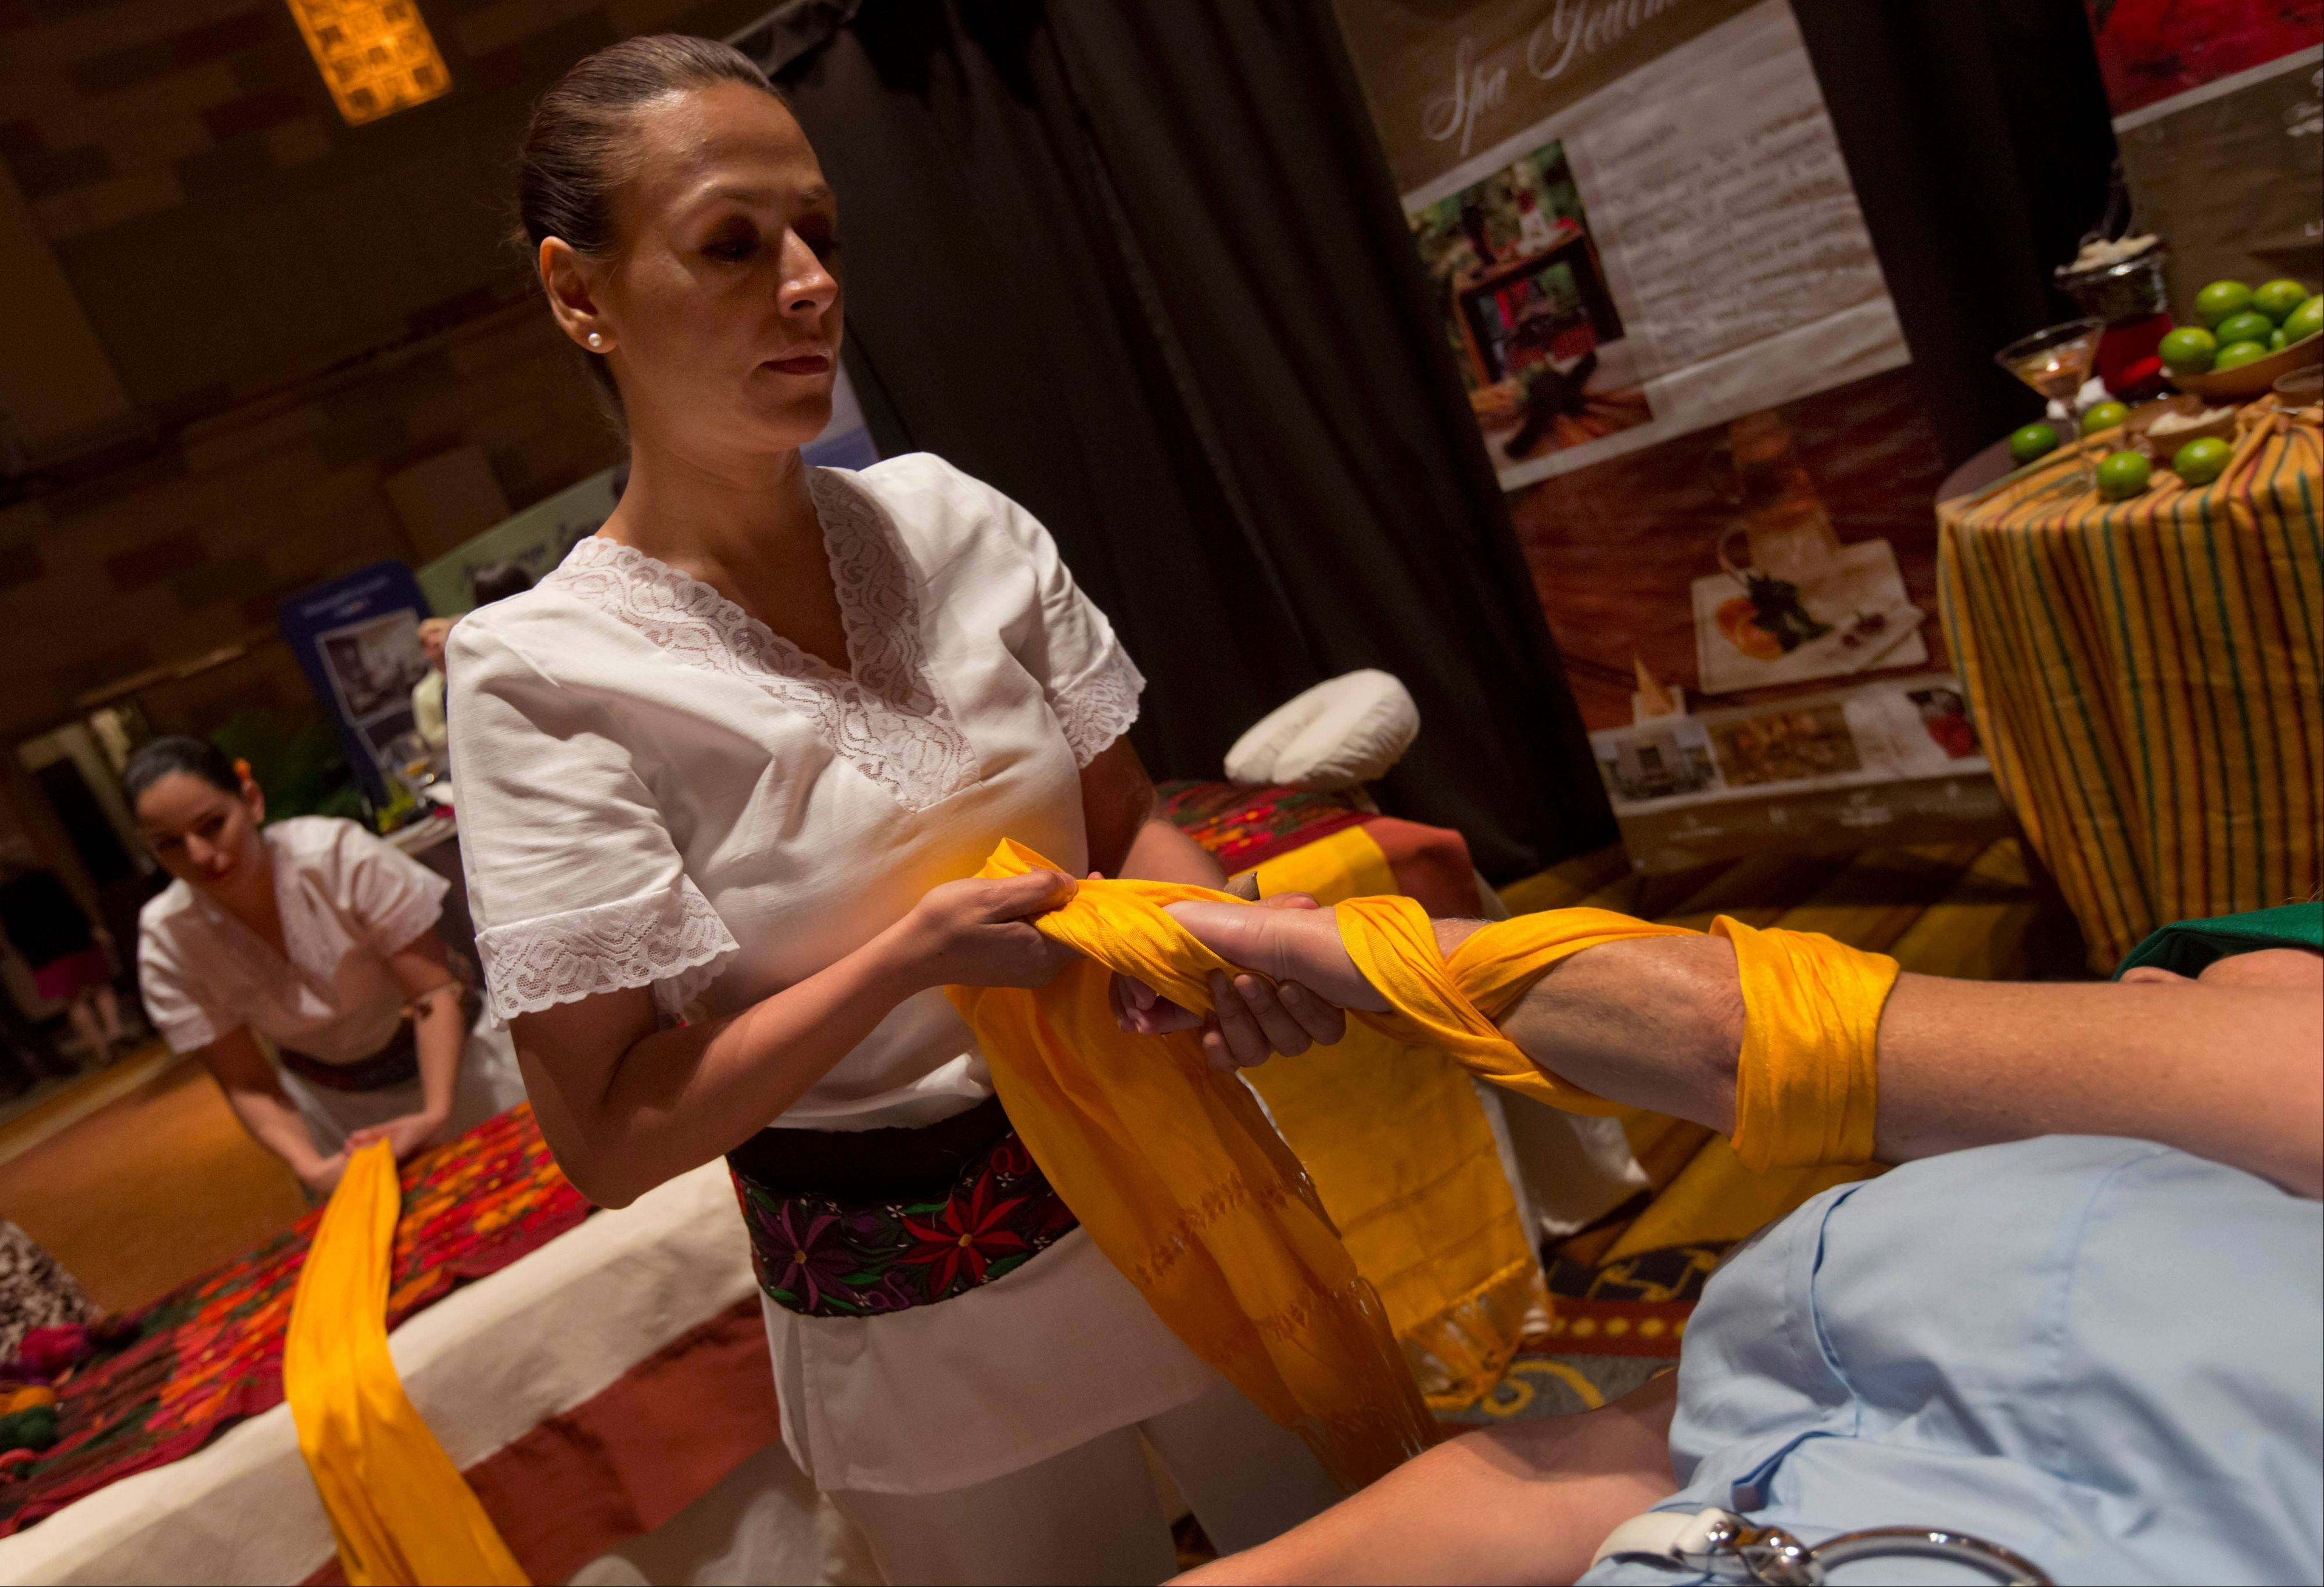 A woman receives a Mayan Royal Massage from Angelica Hurtado at Grand Velas Riviera Maya Spa Resort in Playa del Carmen, Mexico. Brightly colored shawls traditionally used for carrying babies are wrapped around limbs and torso for a gentle stretch treatment preceded by a lemon massage.